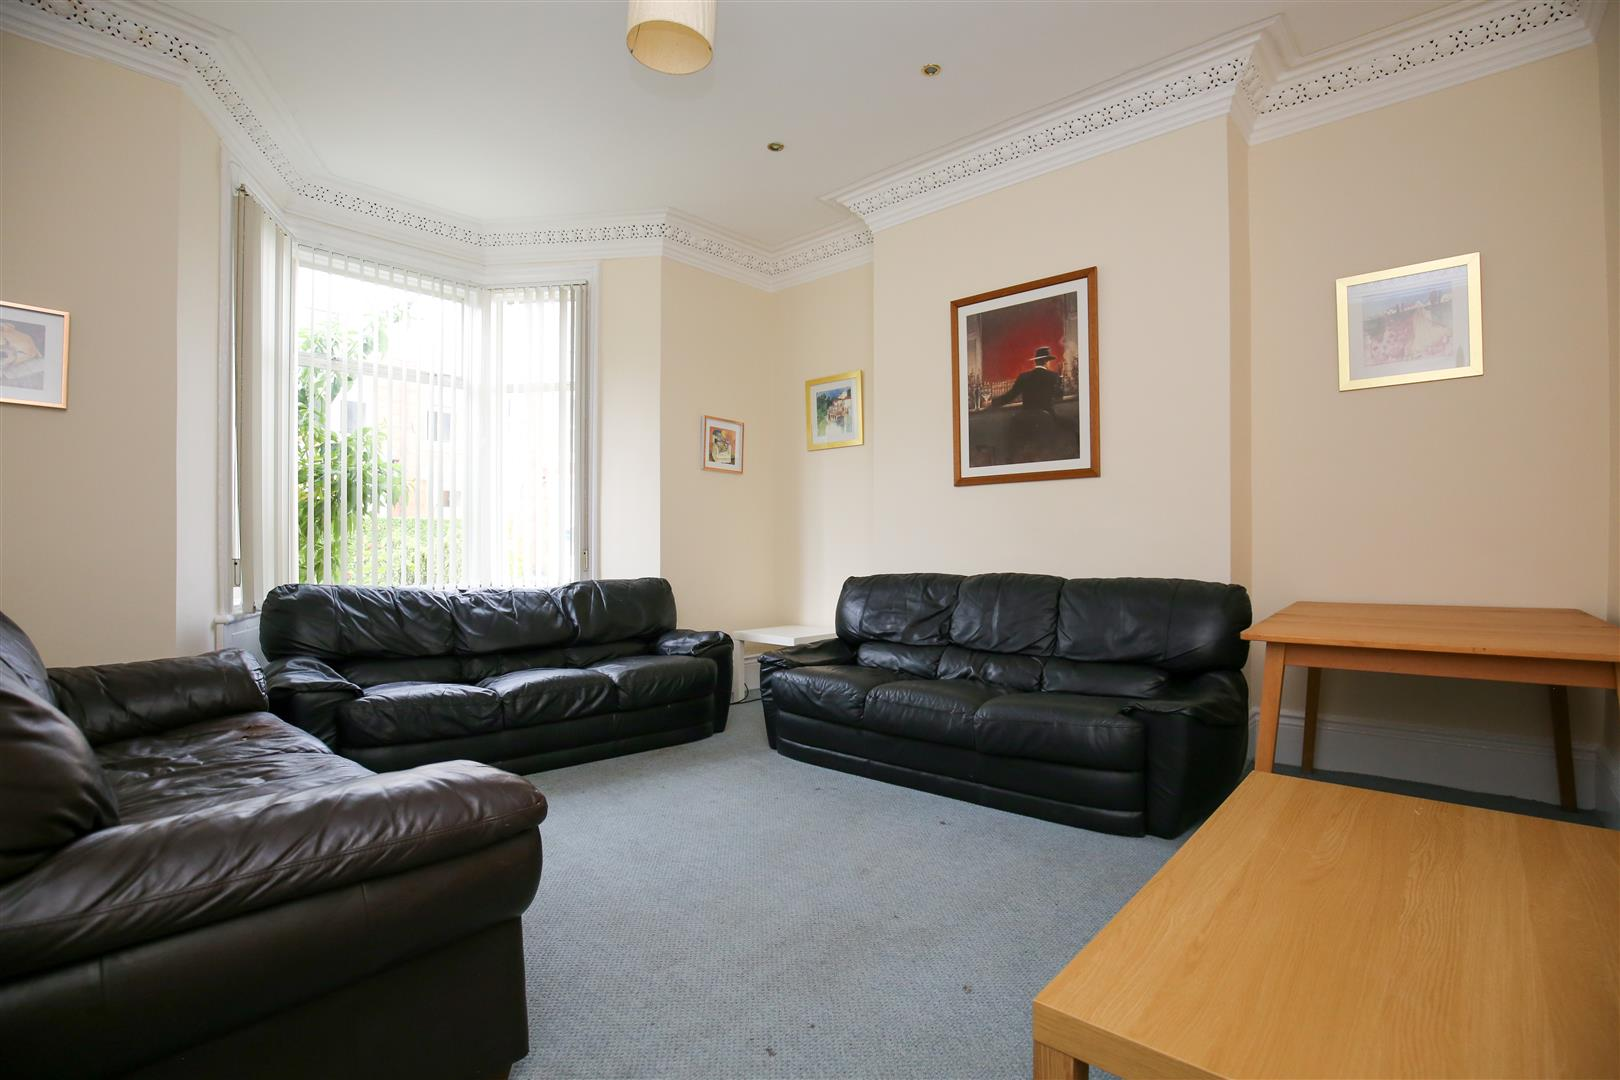 8 bed terraced house to rent in Jesmond, NE2 3HD, NE2